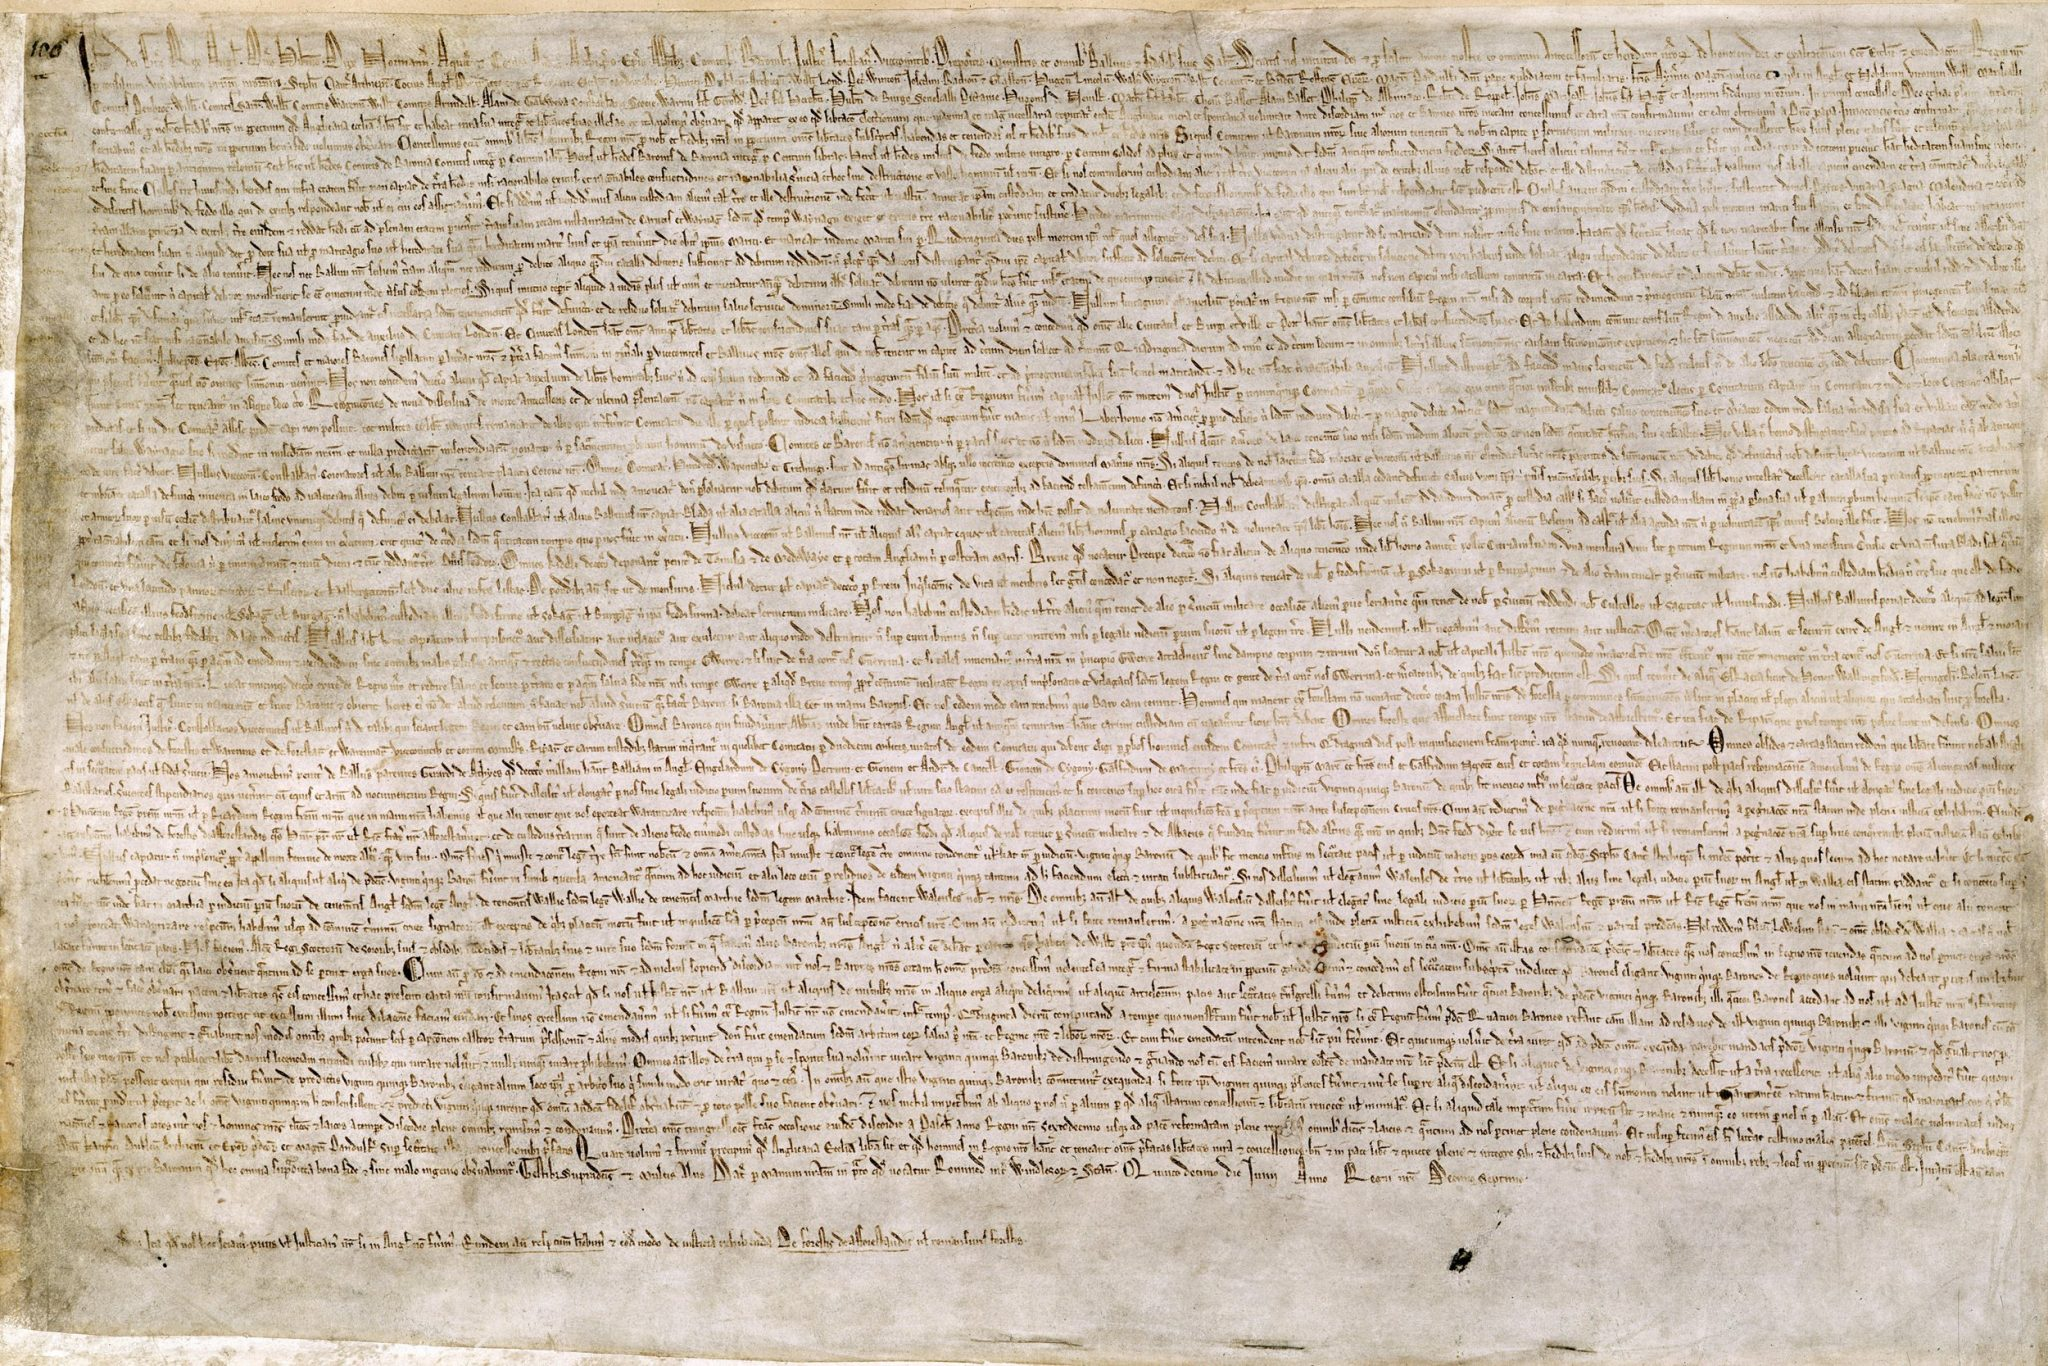 15th June 1215: King John agrees to Magna Carta by adding his seal